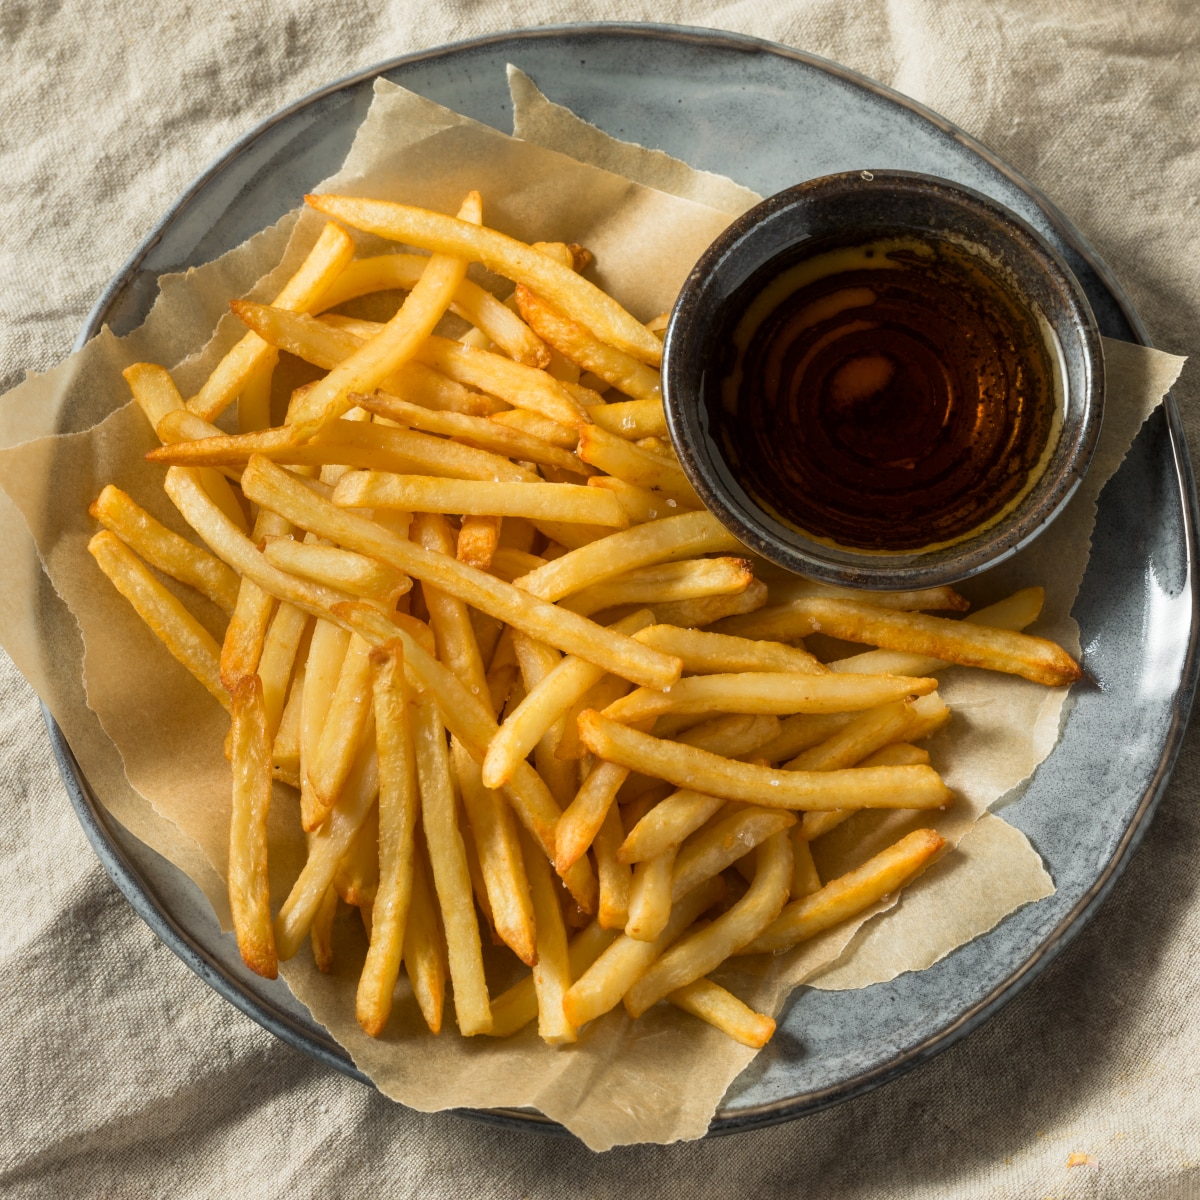 air fryer french fries on a blue stone plate with malt vinegar for dipping